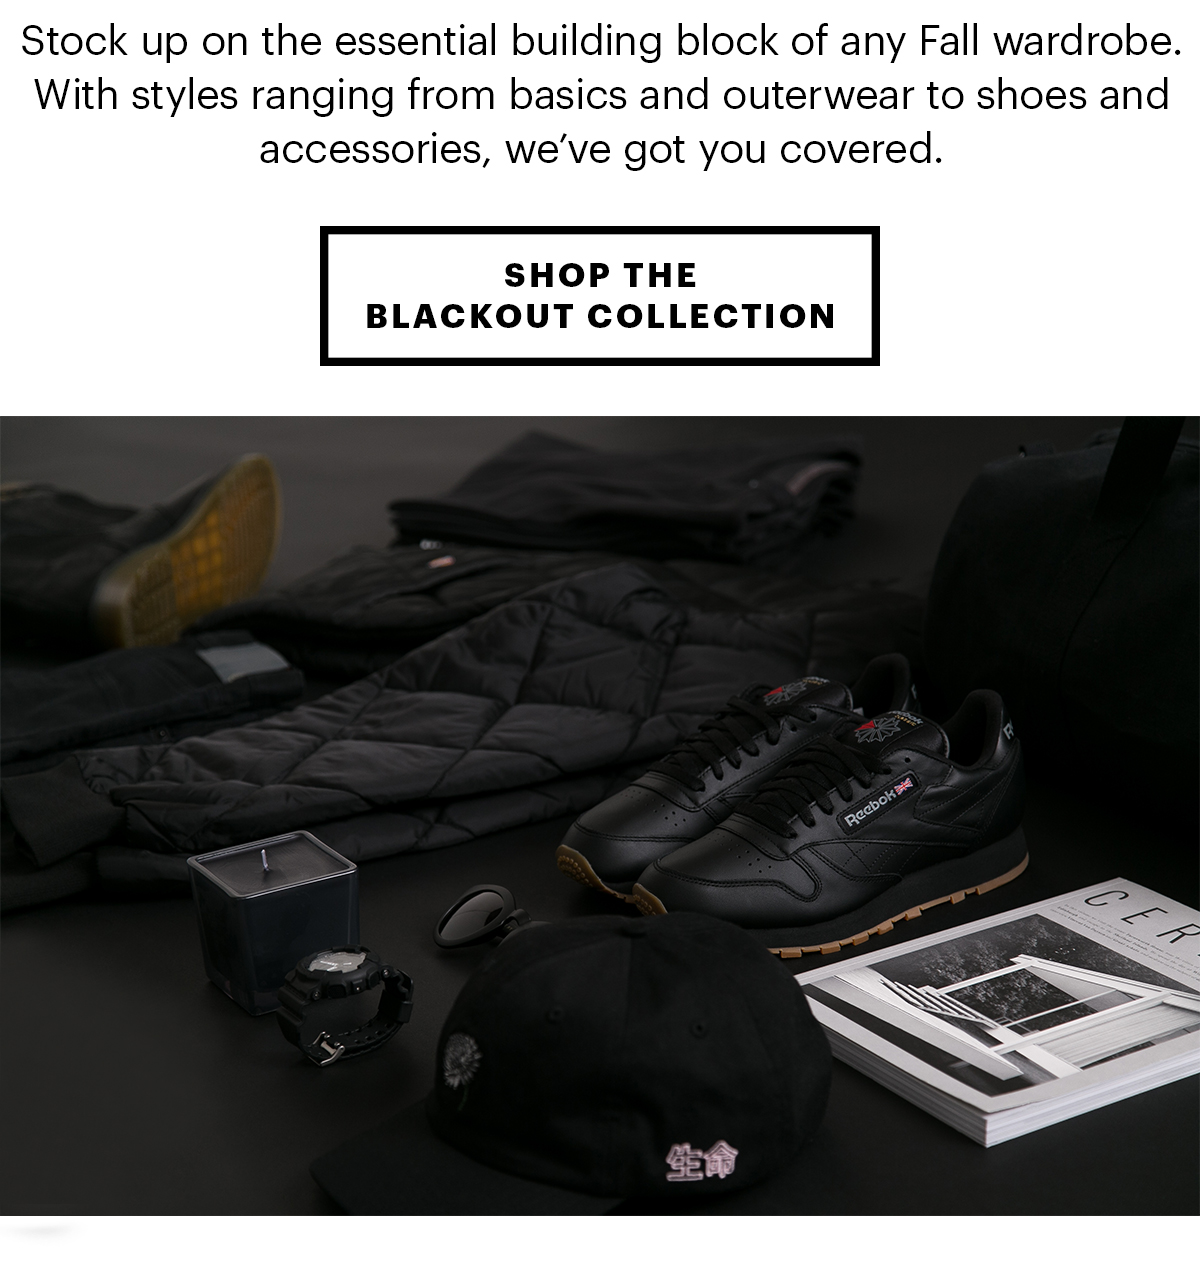 Stock up on the essential building block of any Fall wardrobe. With styles ranging from basics and outerwear to shoes and accessories, we've got you covered. | Shop the Blackout Collection.